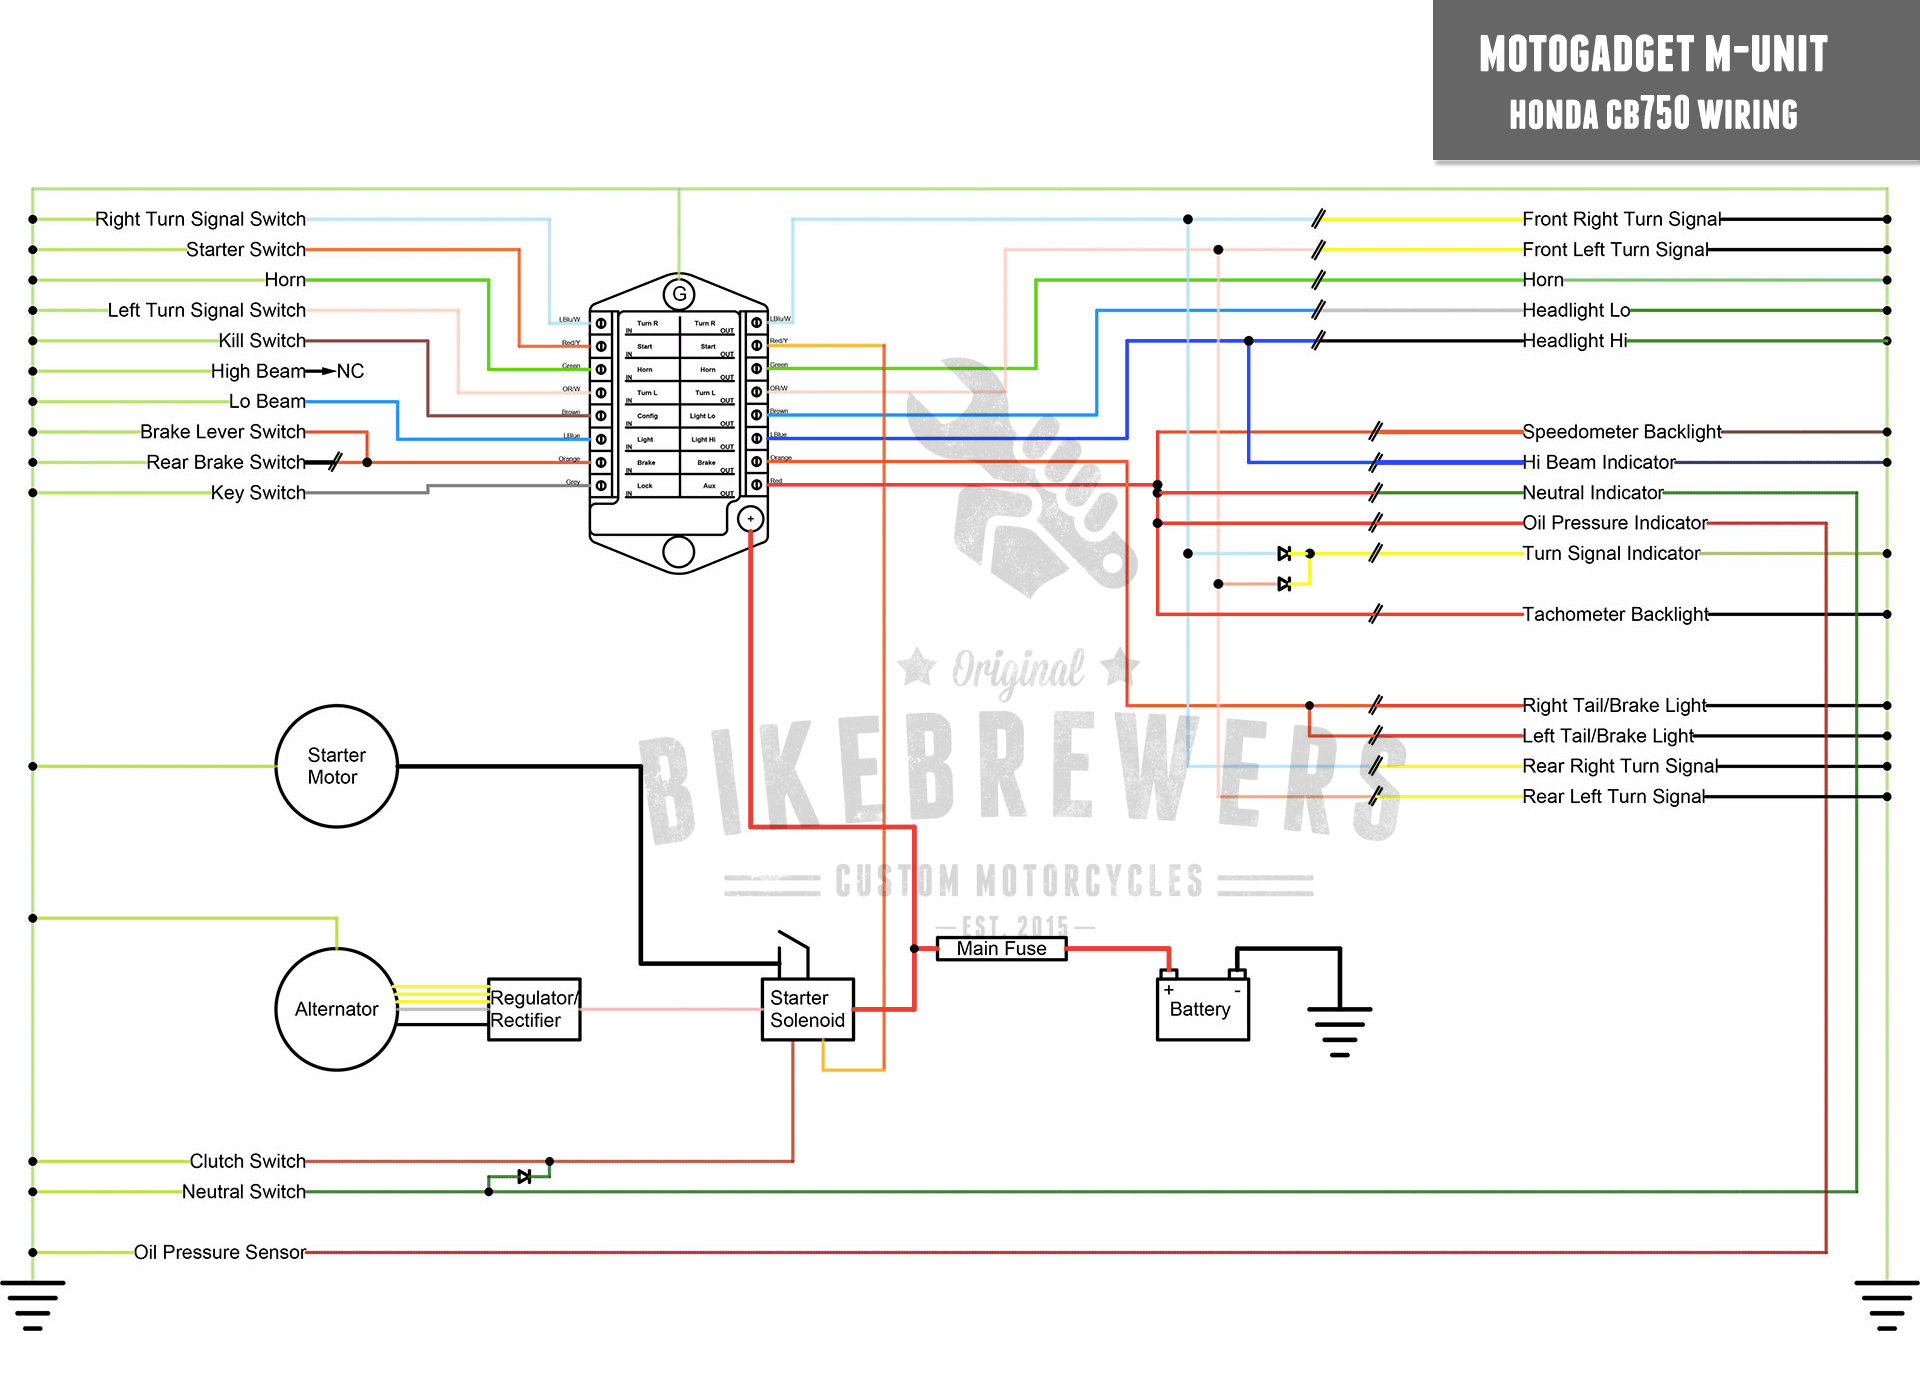 Motogadget M Unit Wiring on old fuse box diagram